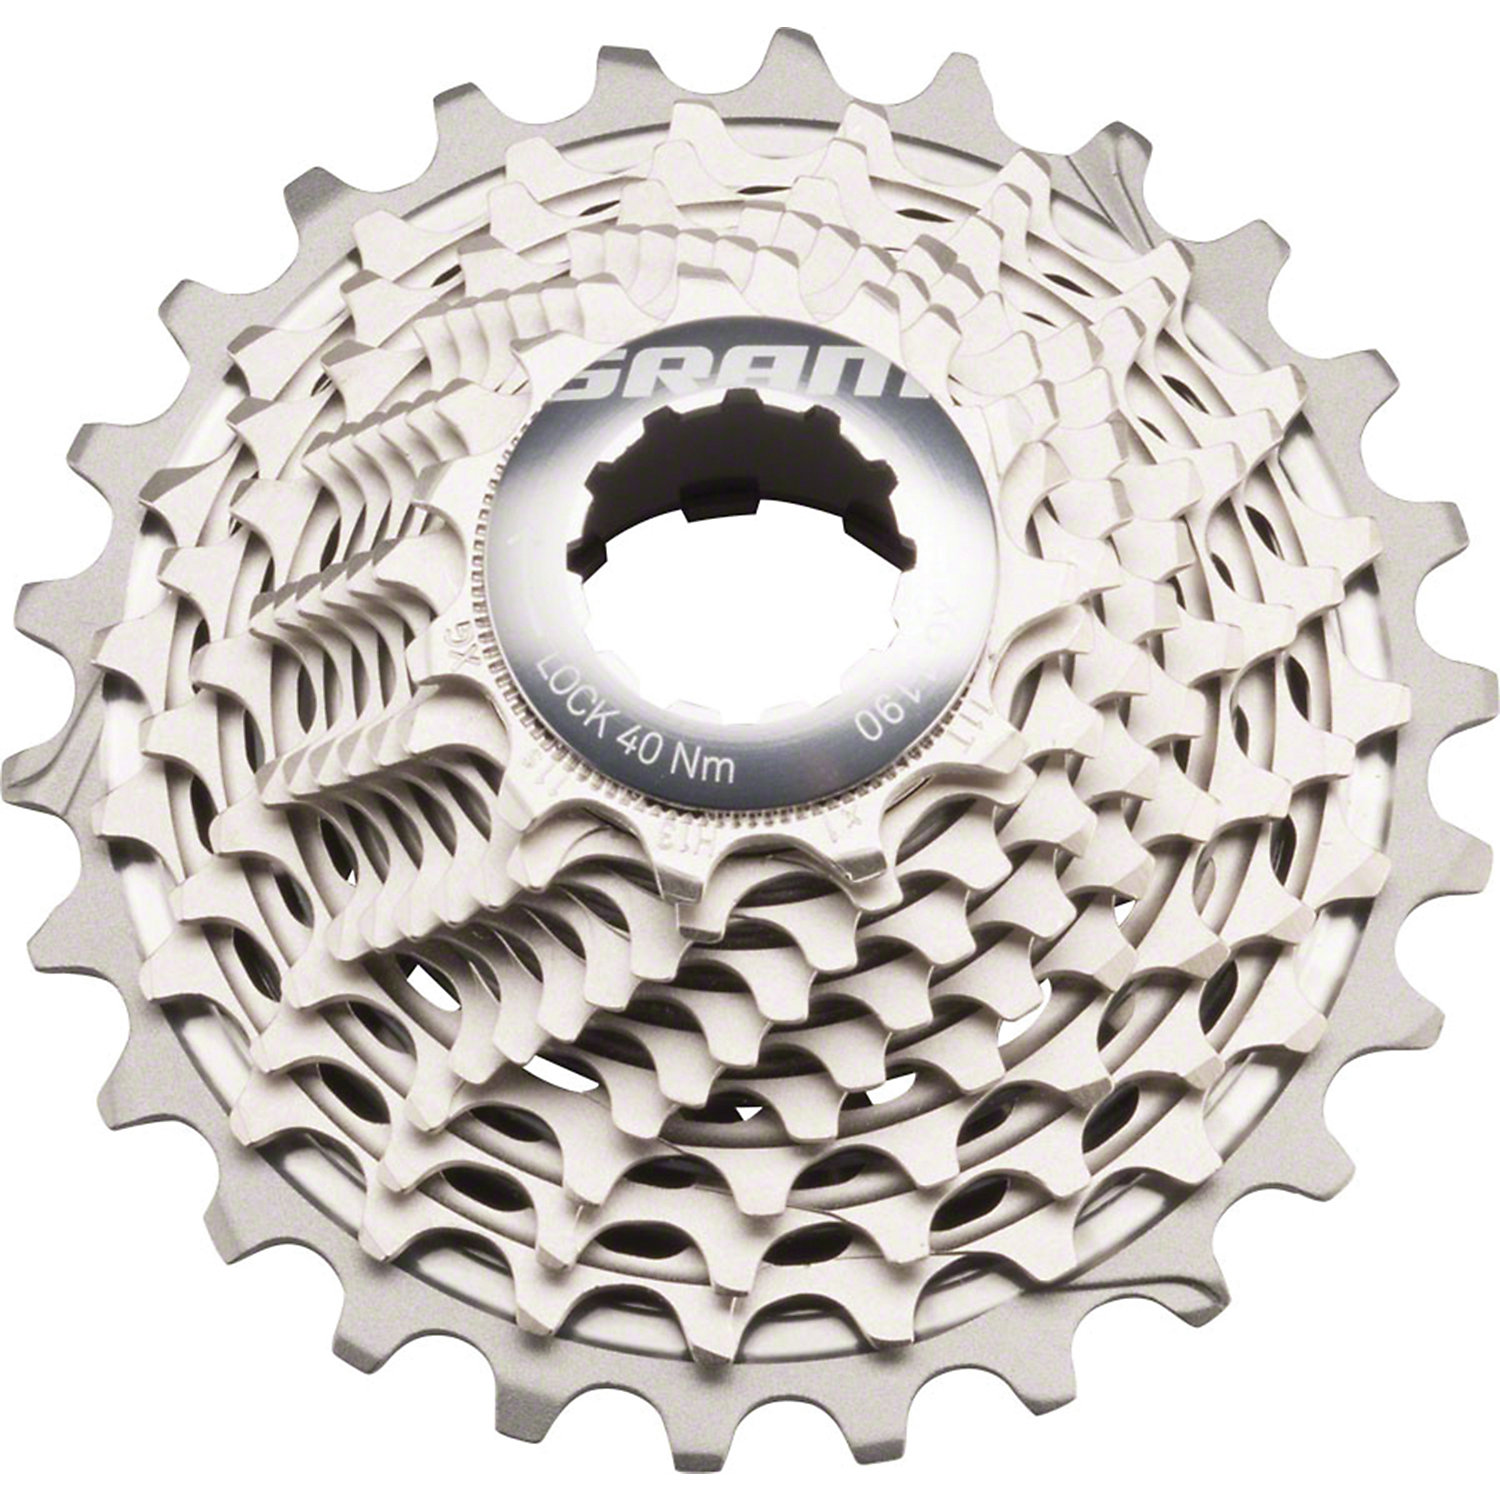 Sram Red Xg-1190 Cassette 11 Speed 11-25t Silver A2 Cycling